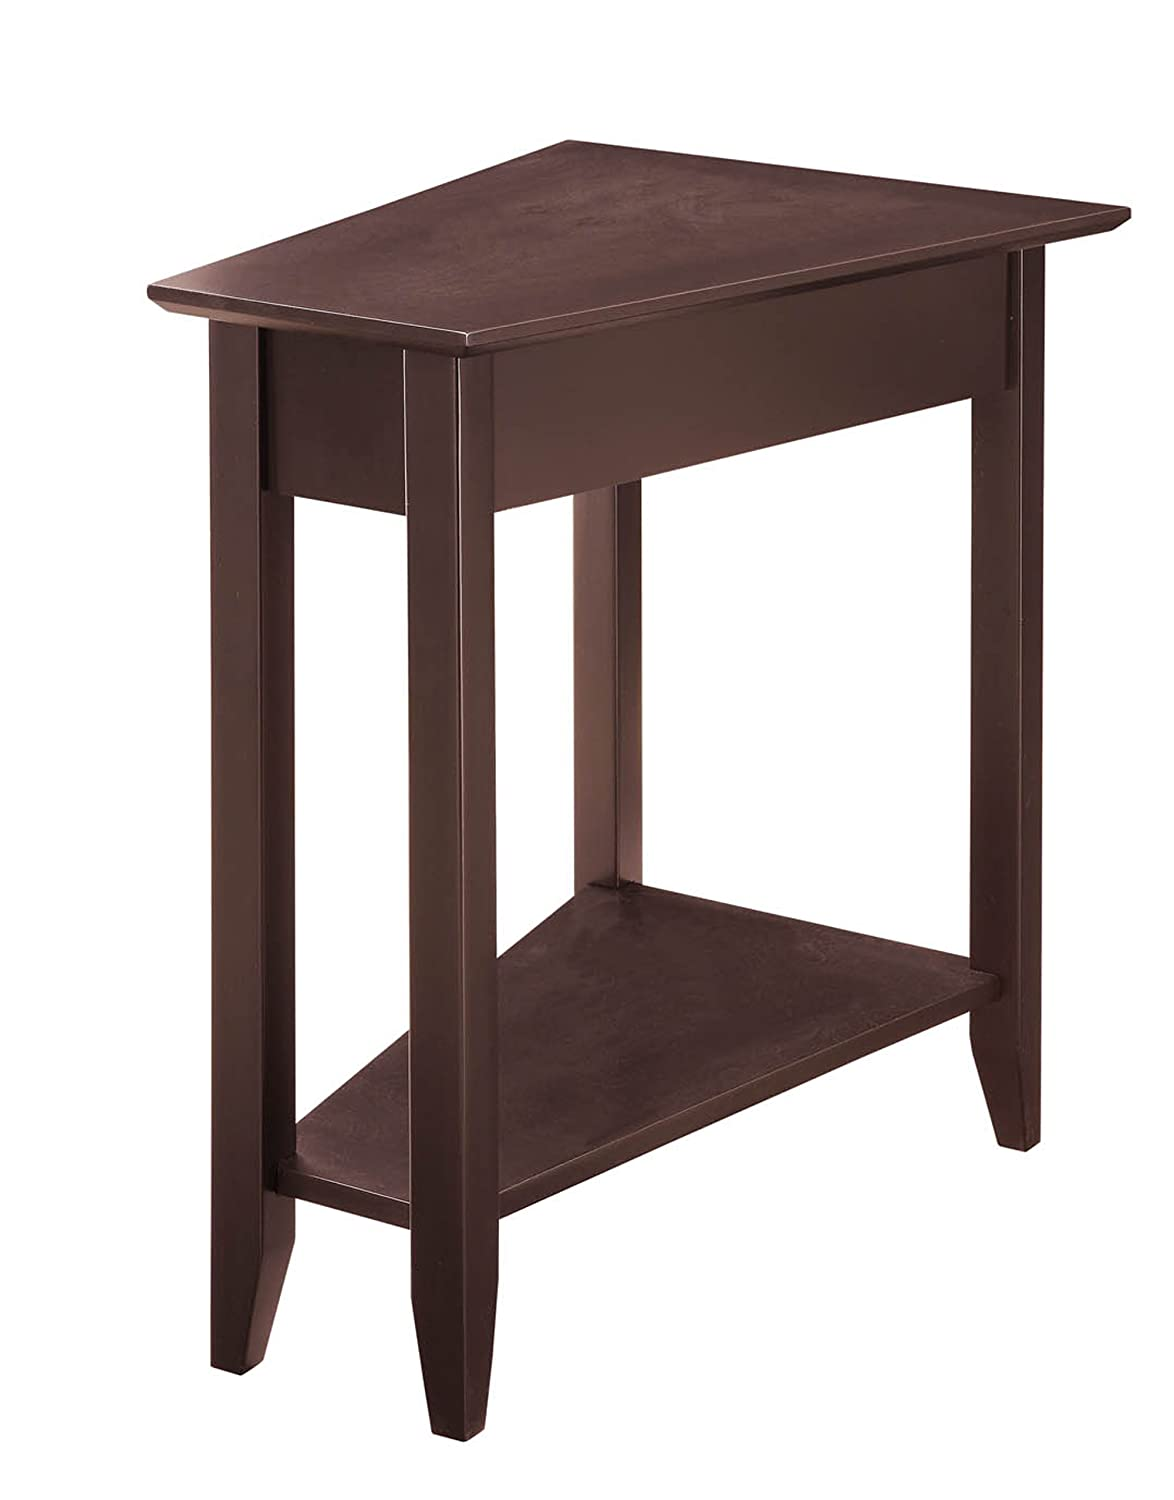 Amazon.com: Convenience Concepts American Heritage Modern Wedge End Table,  Espresso: Kitchen U0026 Dining